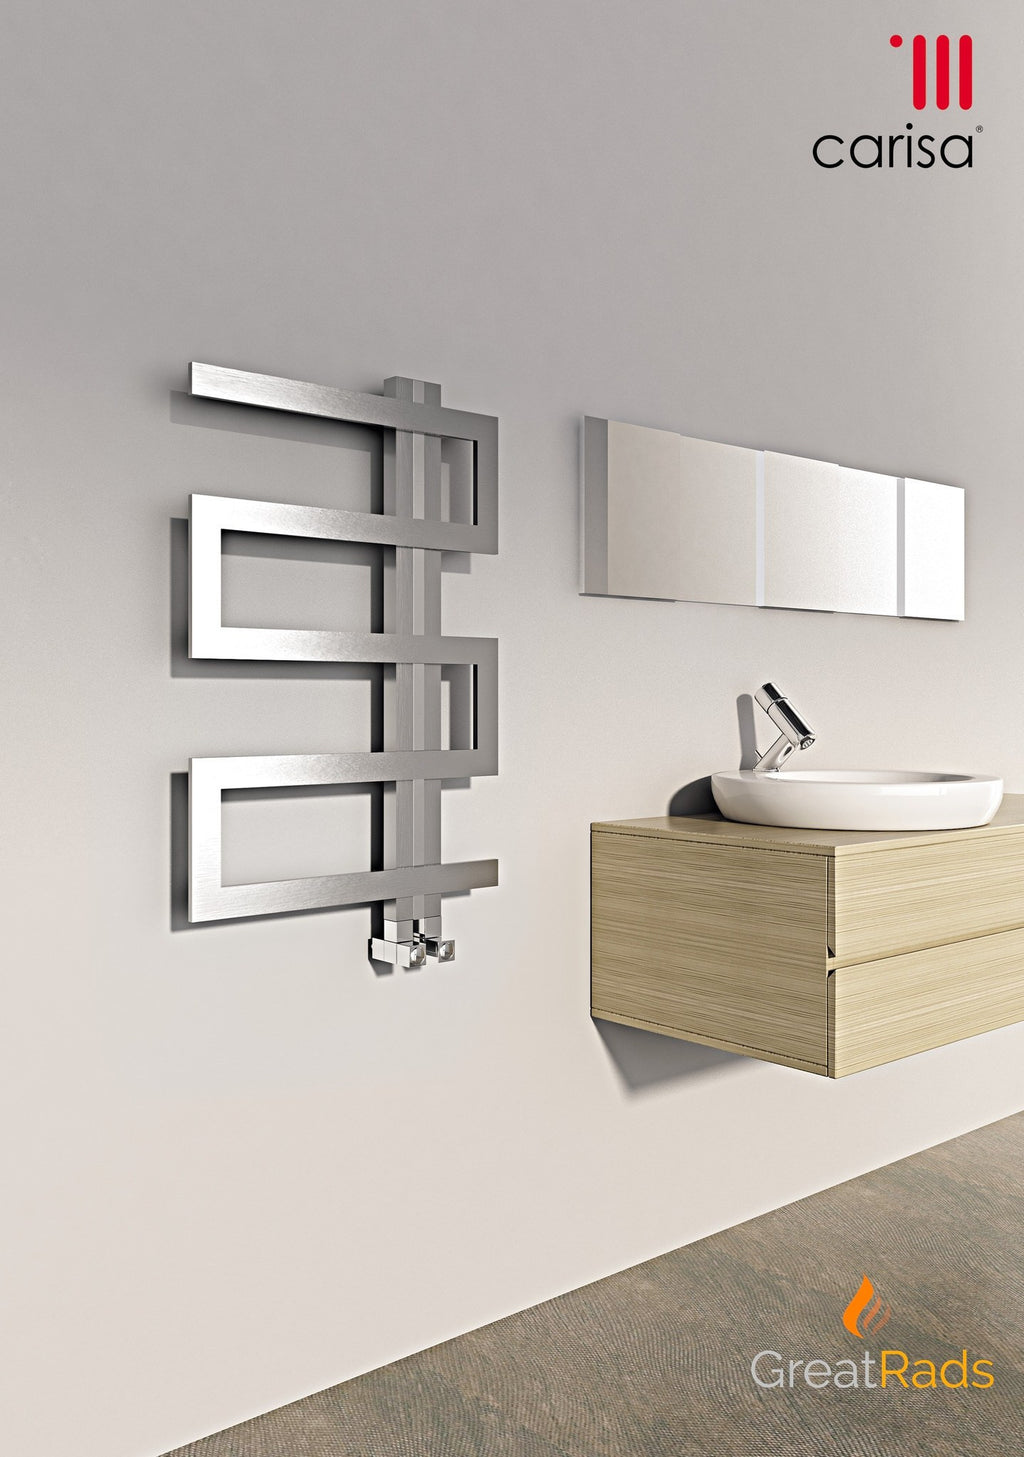 Towel Radiator - Carisa Ibiza Stainless Steel Towel Radiator